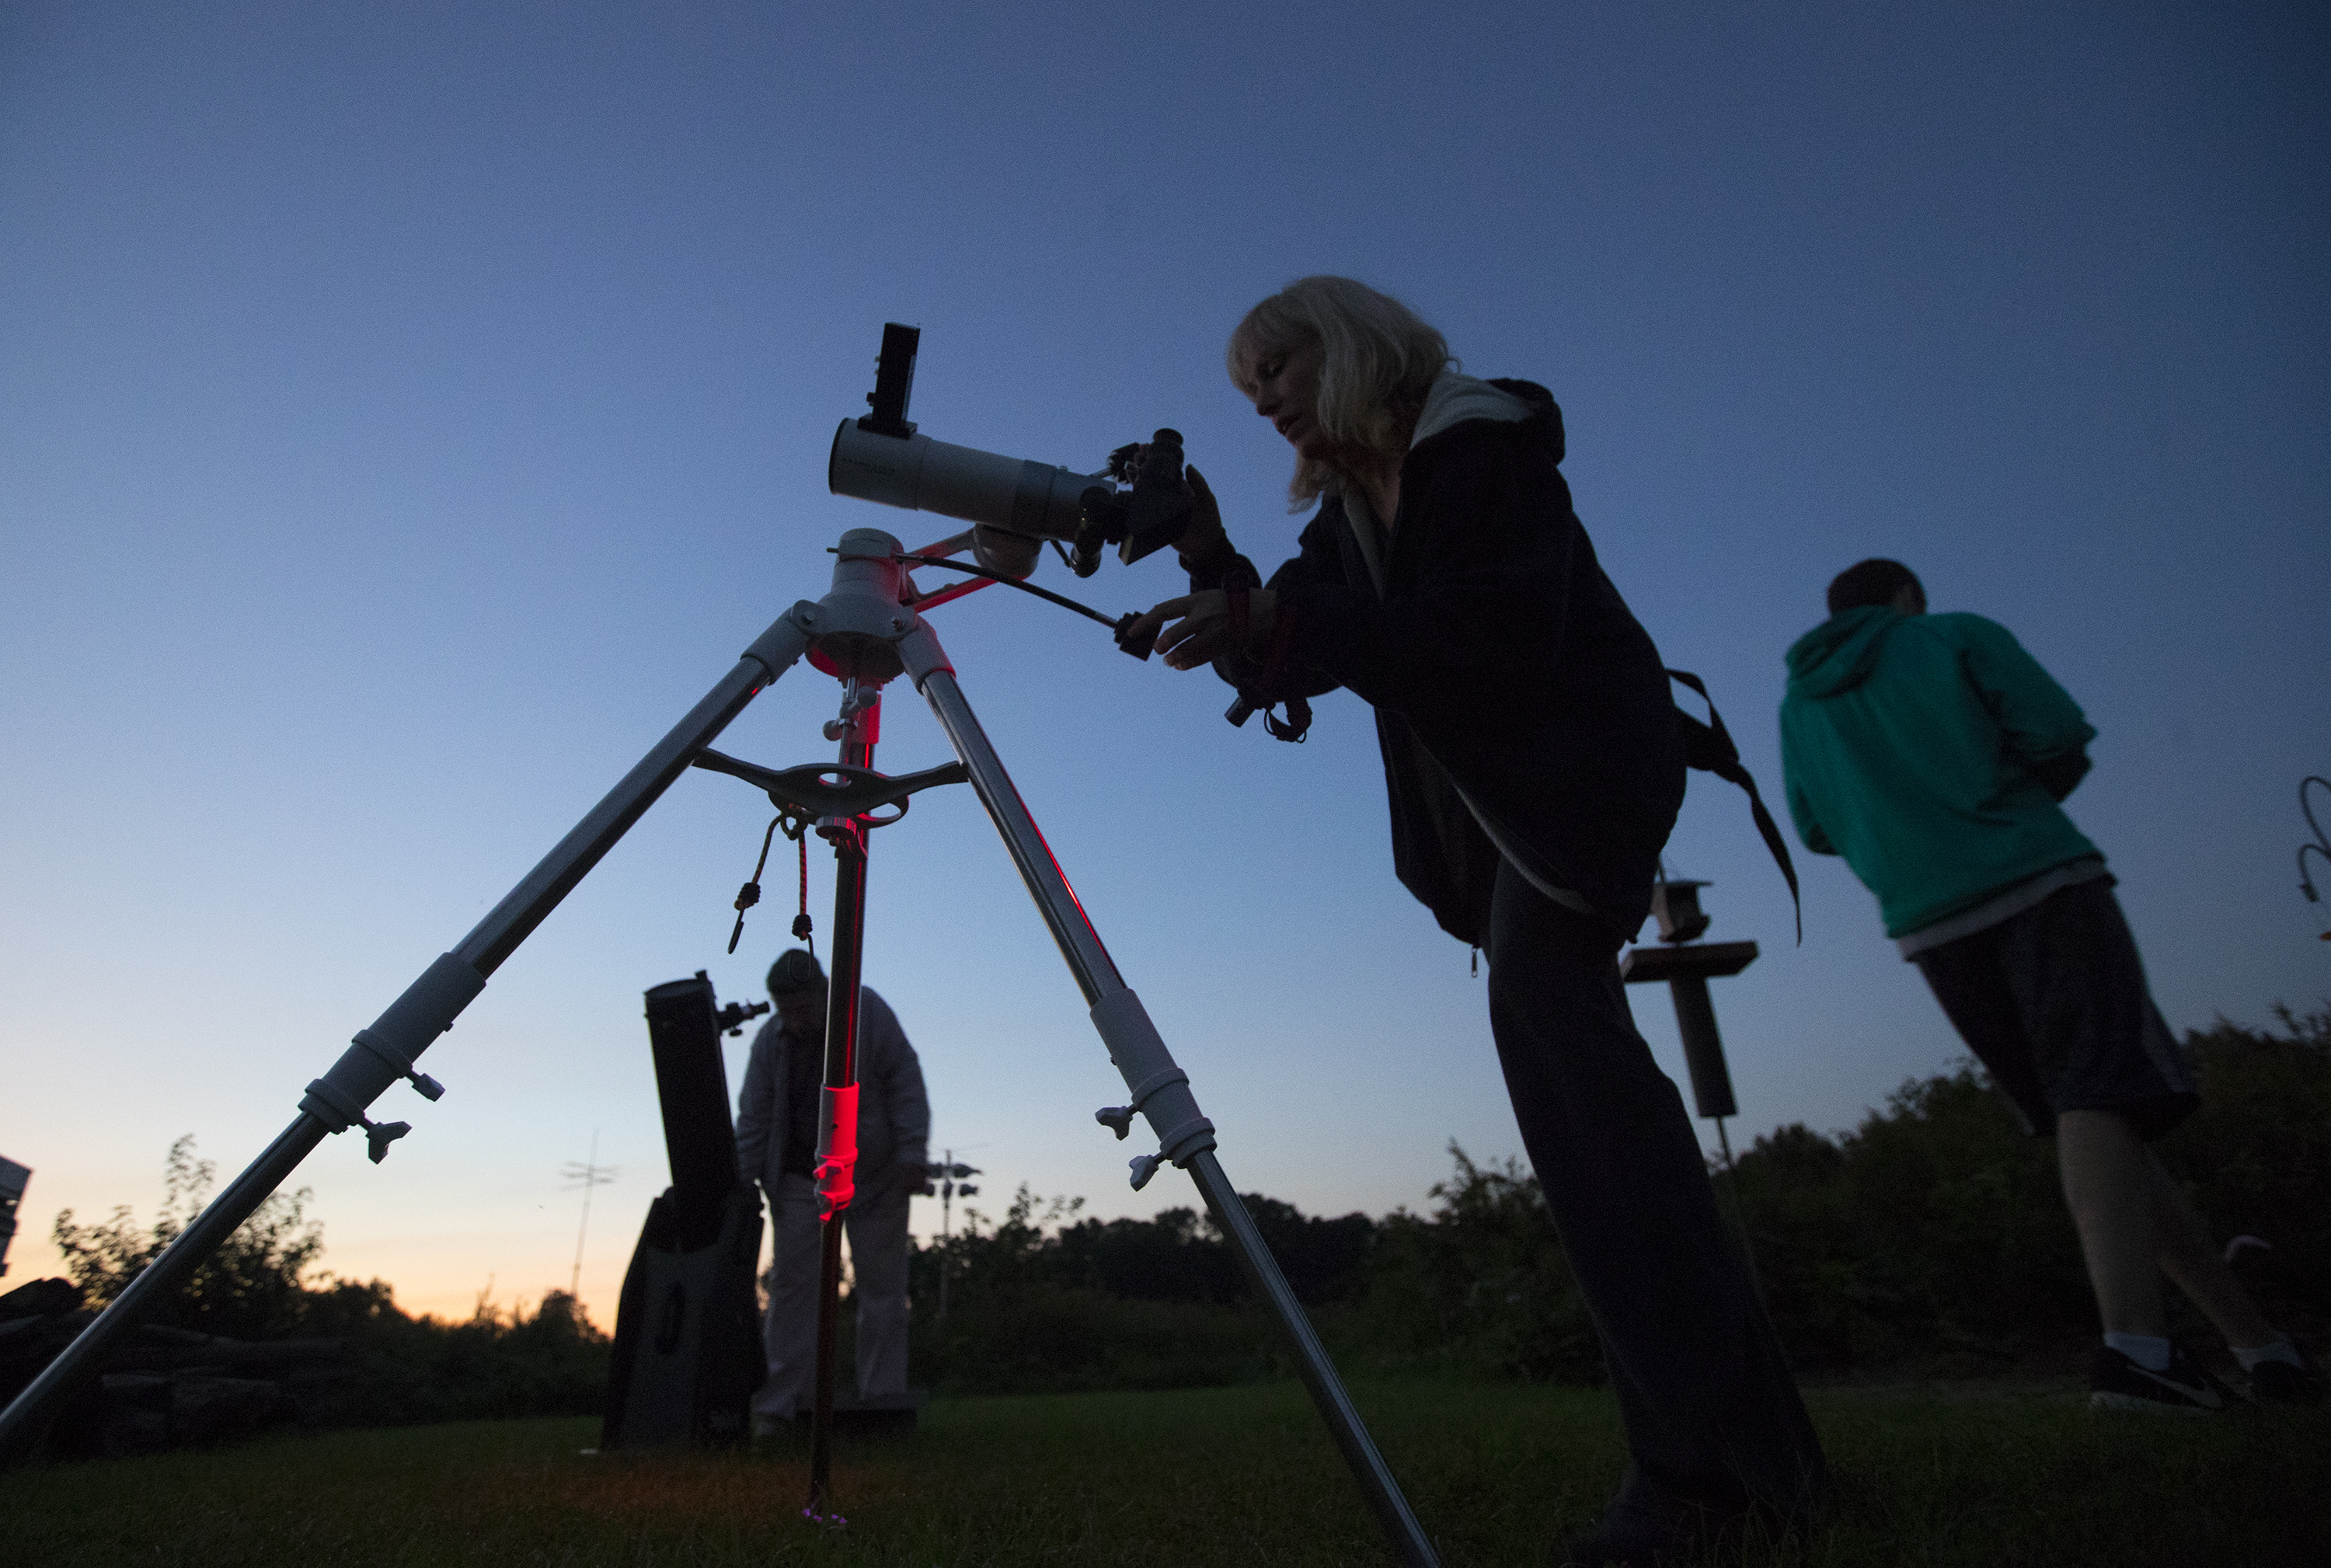 A stargazing event with the Chester County Astronomical Society at the Bucktoe Creek Preserve in Avondale, PA on Sept. 29, 2018. Clouds moved in to cause an early end to the evening.